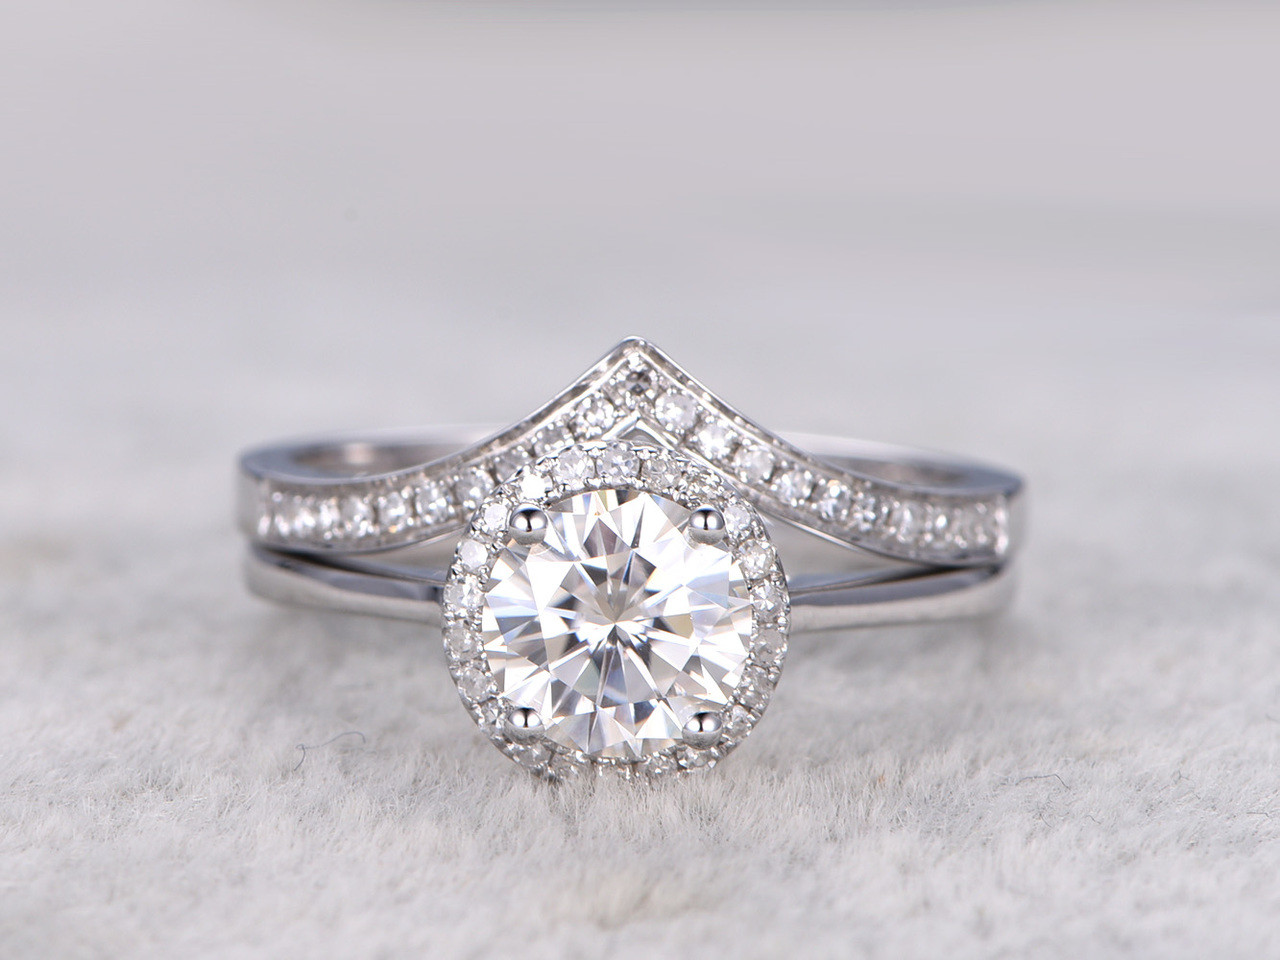 Moissanite engagement ring set Diamond Wedding Bands White Gold